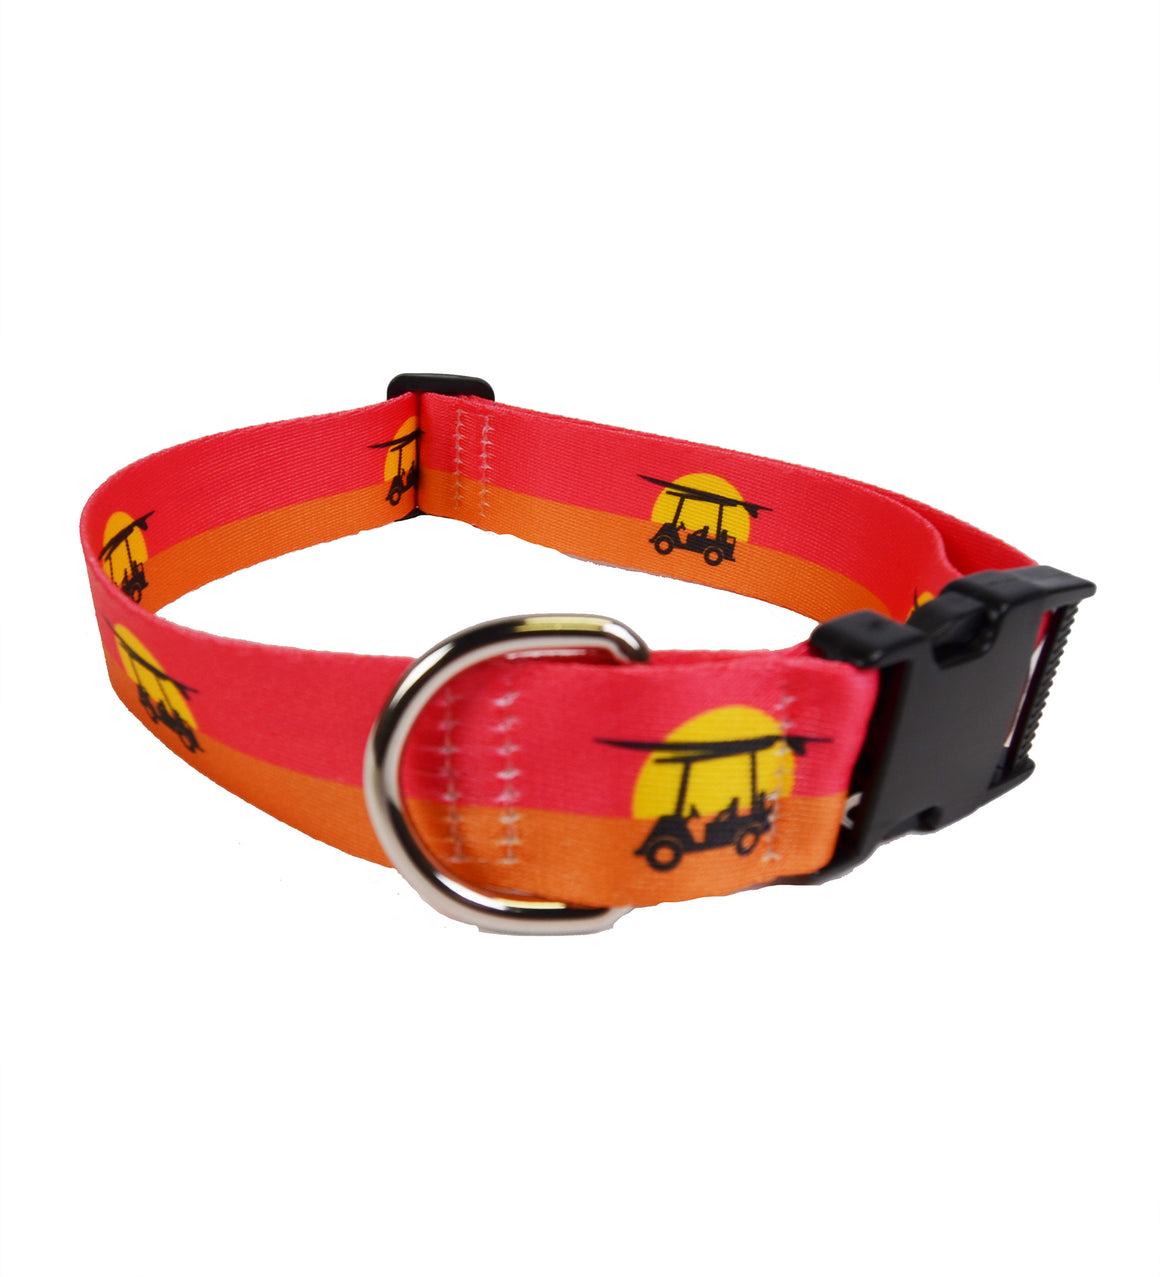 Printed Dog Collar - Endless Sunset